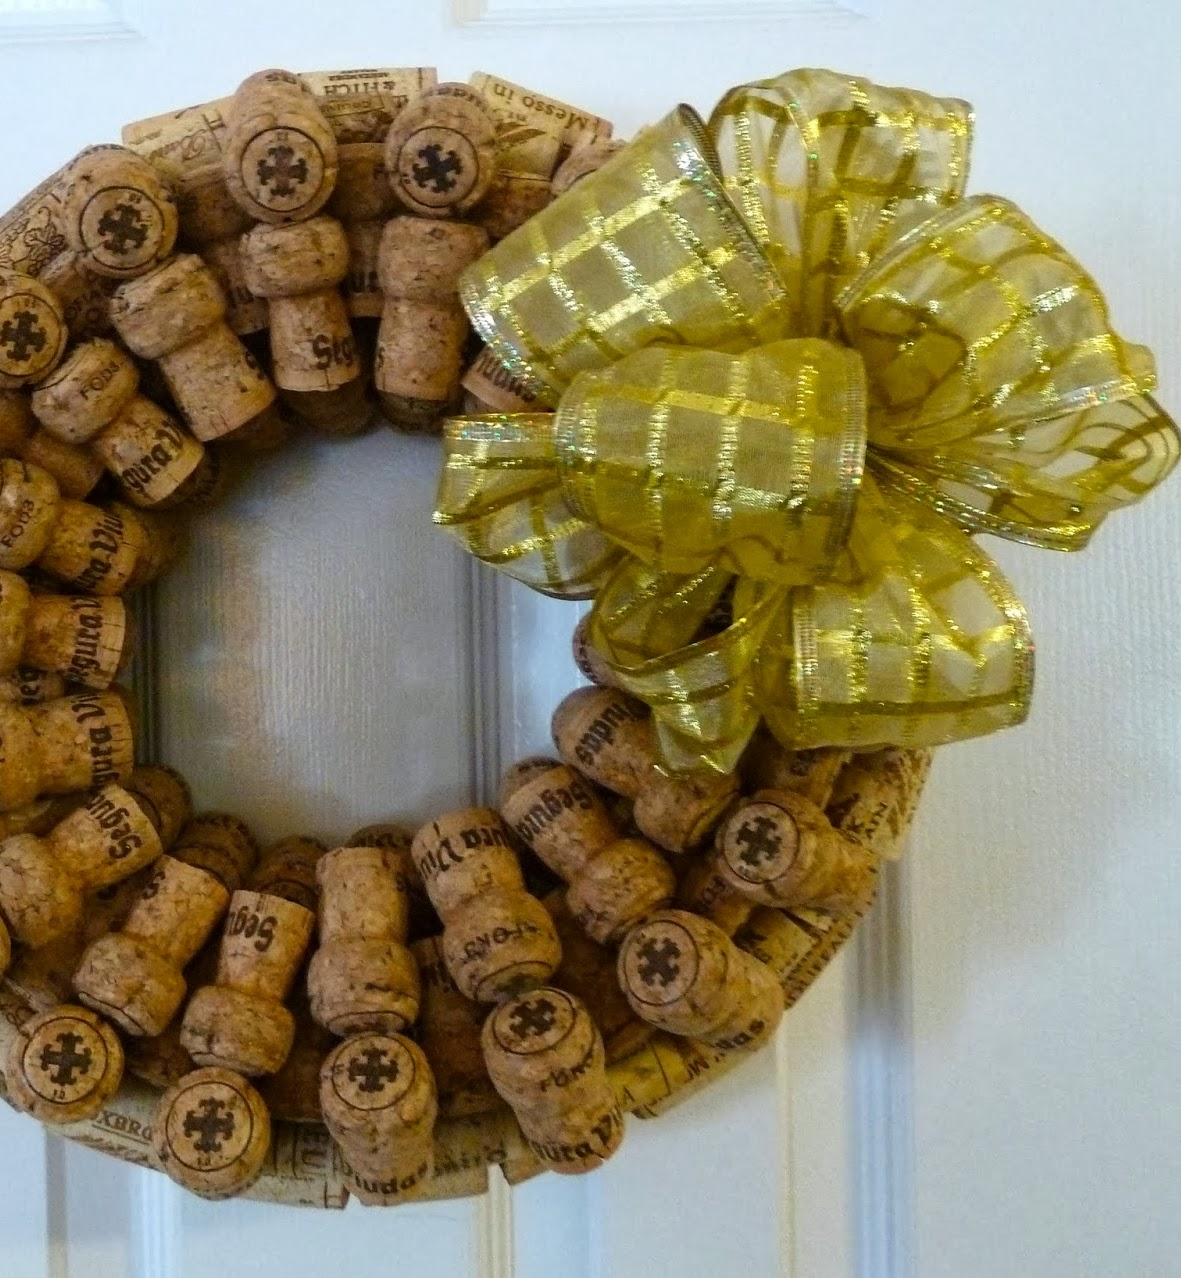 http://www.makeiteasycrafts.com/2014/01/recycled-wine-and-champagne-cork-wreath.html